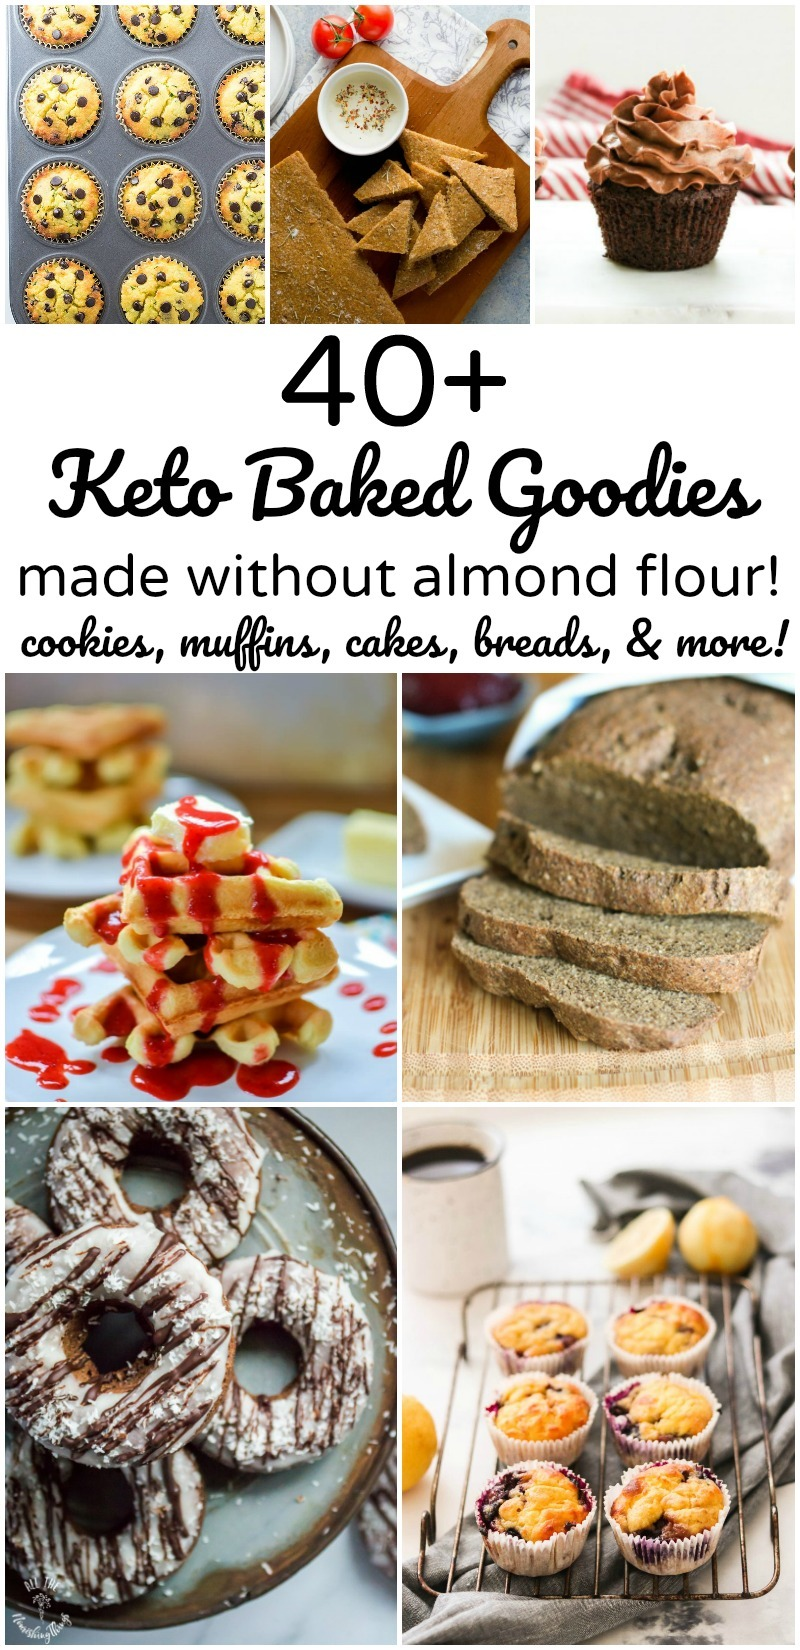 collage of 7 images of keto baked goods made without almond flour with text overlay